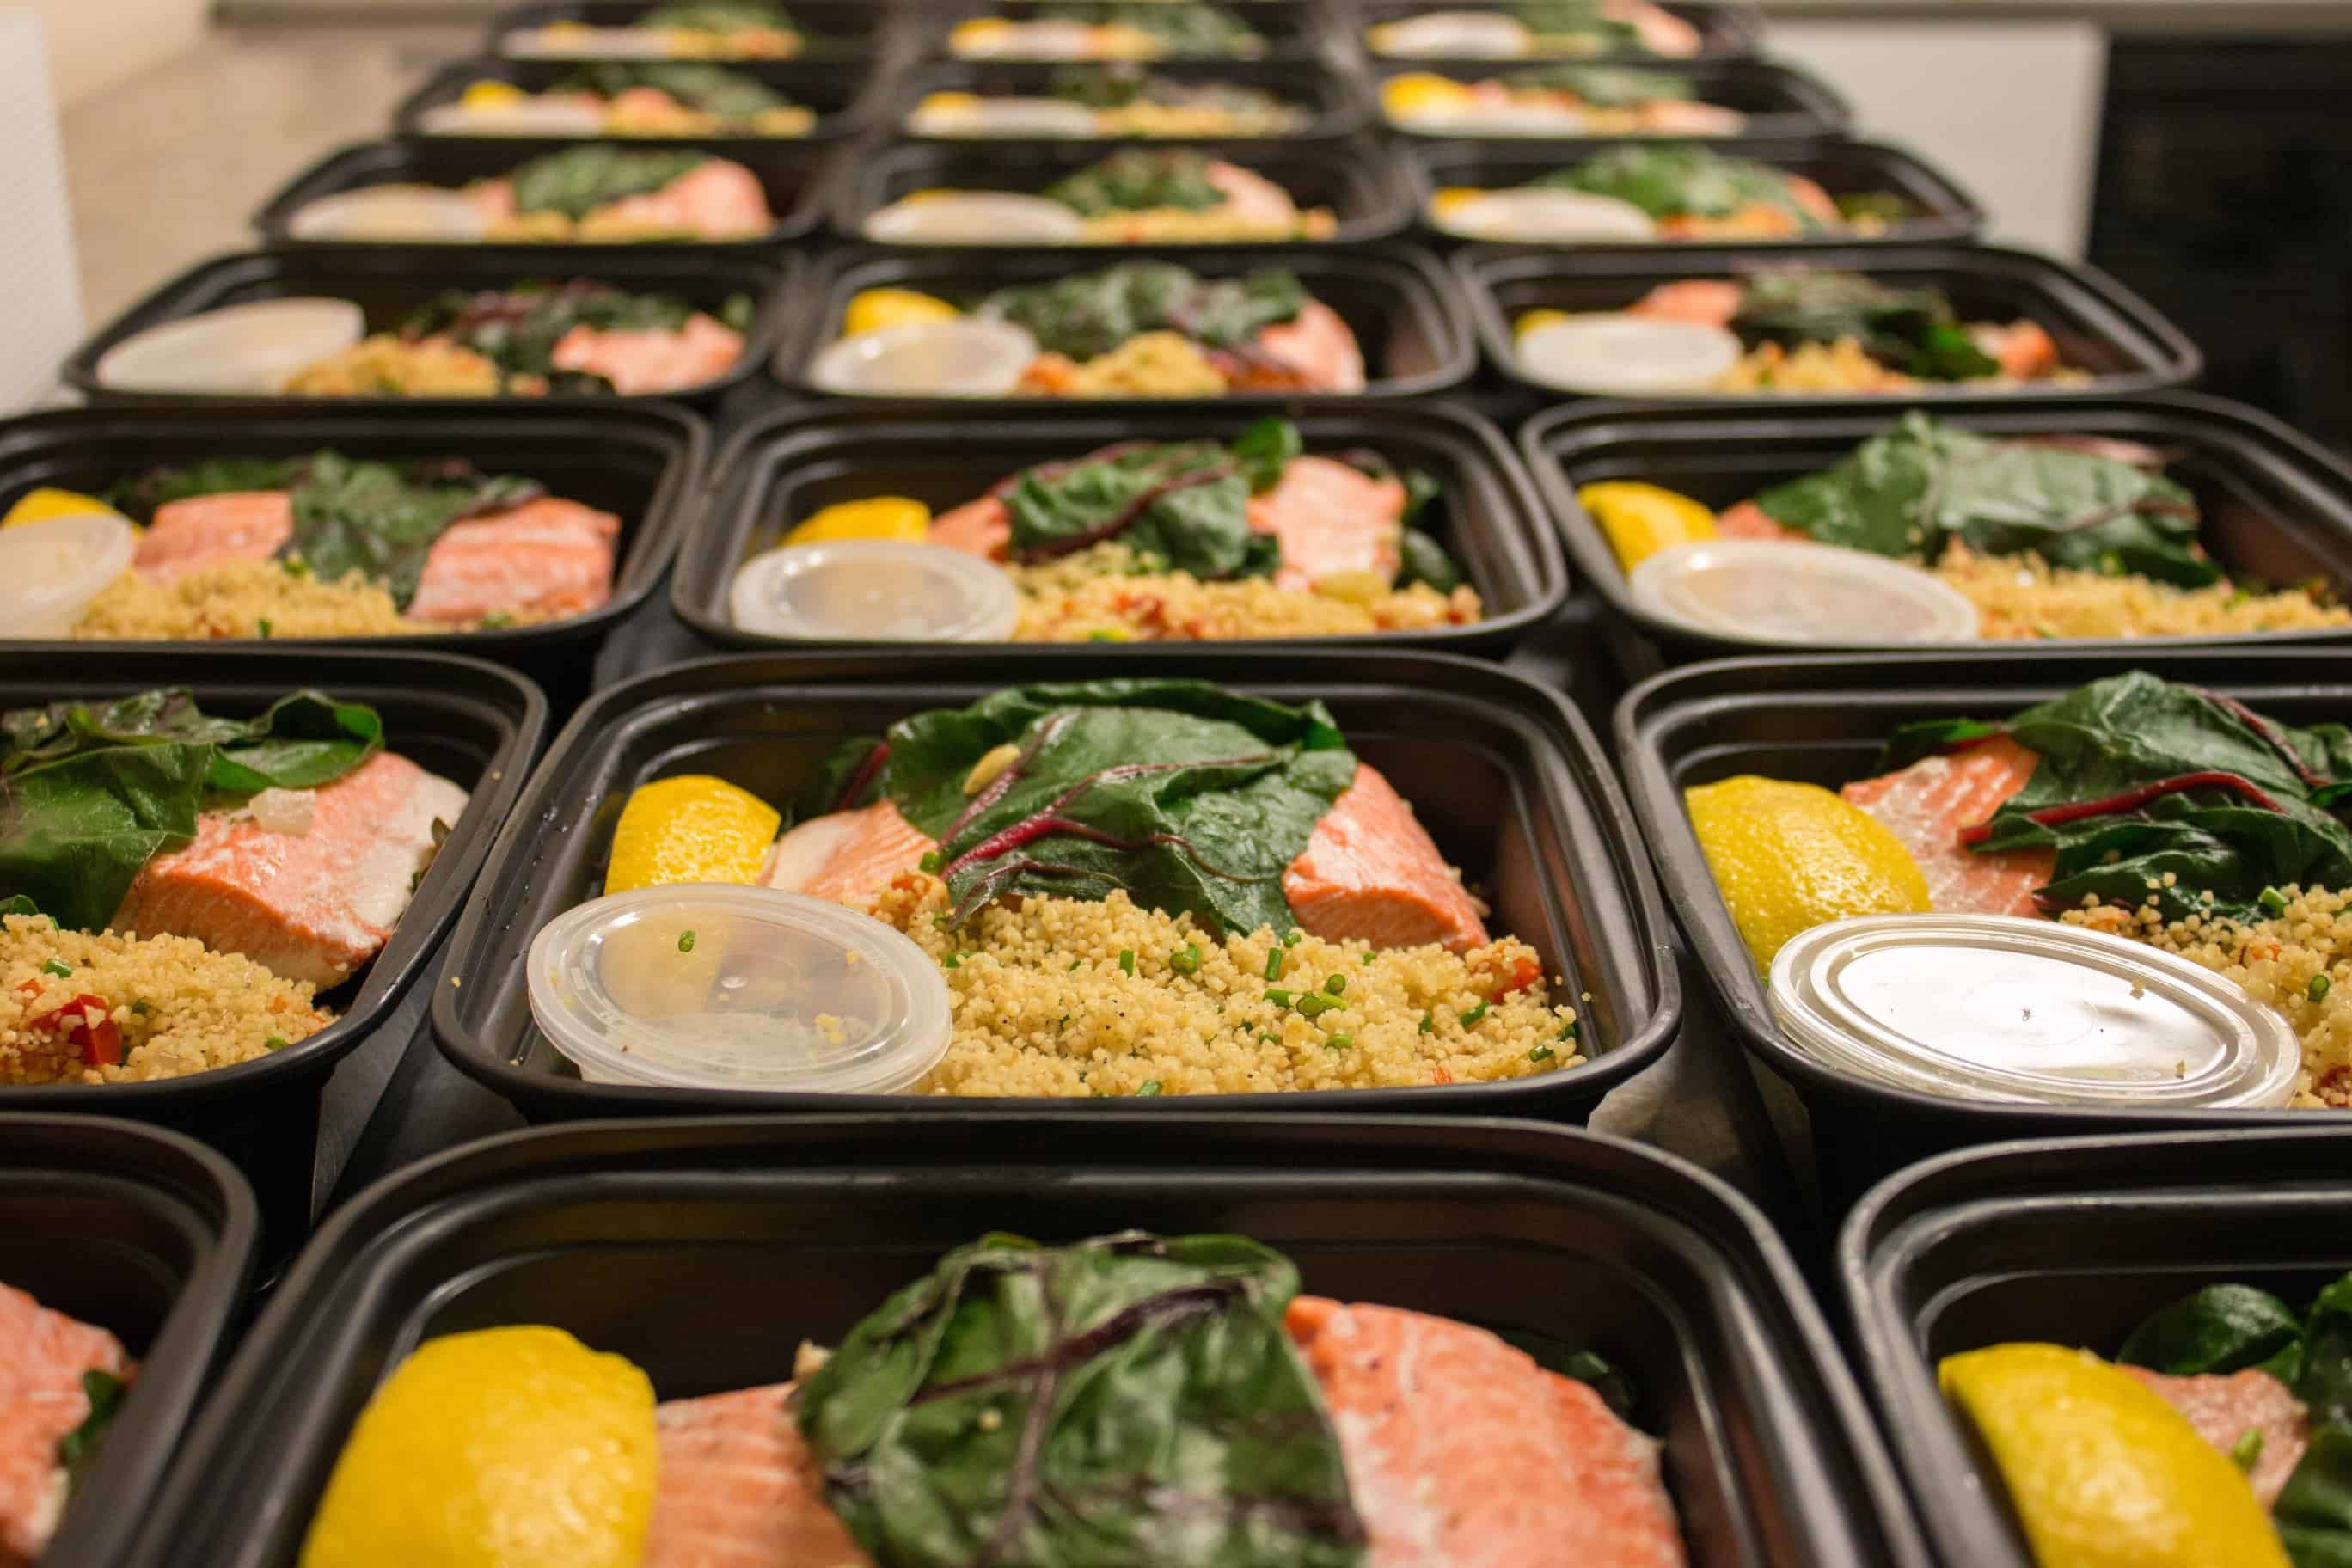 Healthy Premade Lunches top 20 Prepared Meals the Perfect Gift